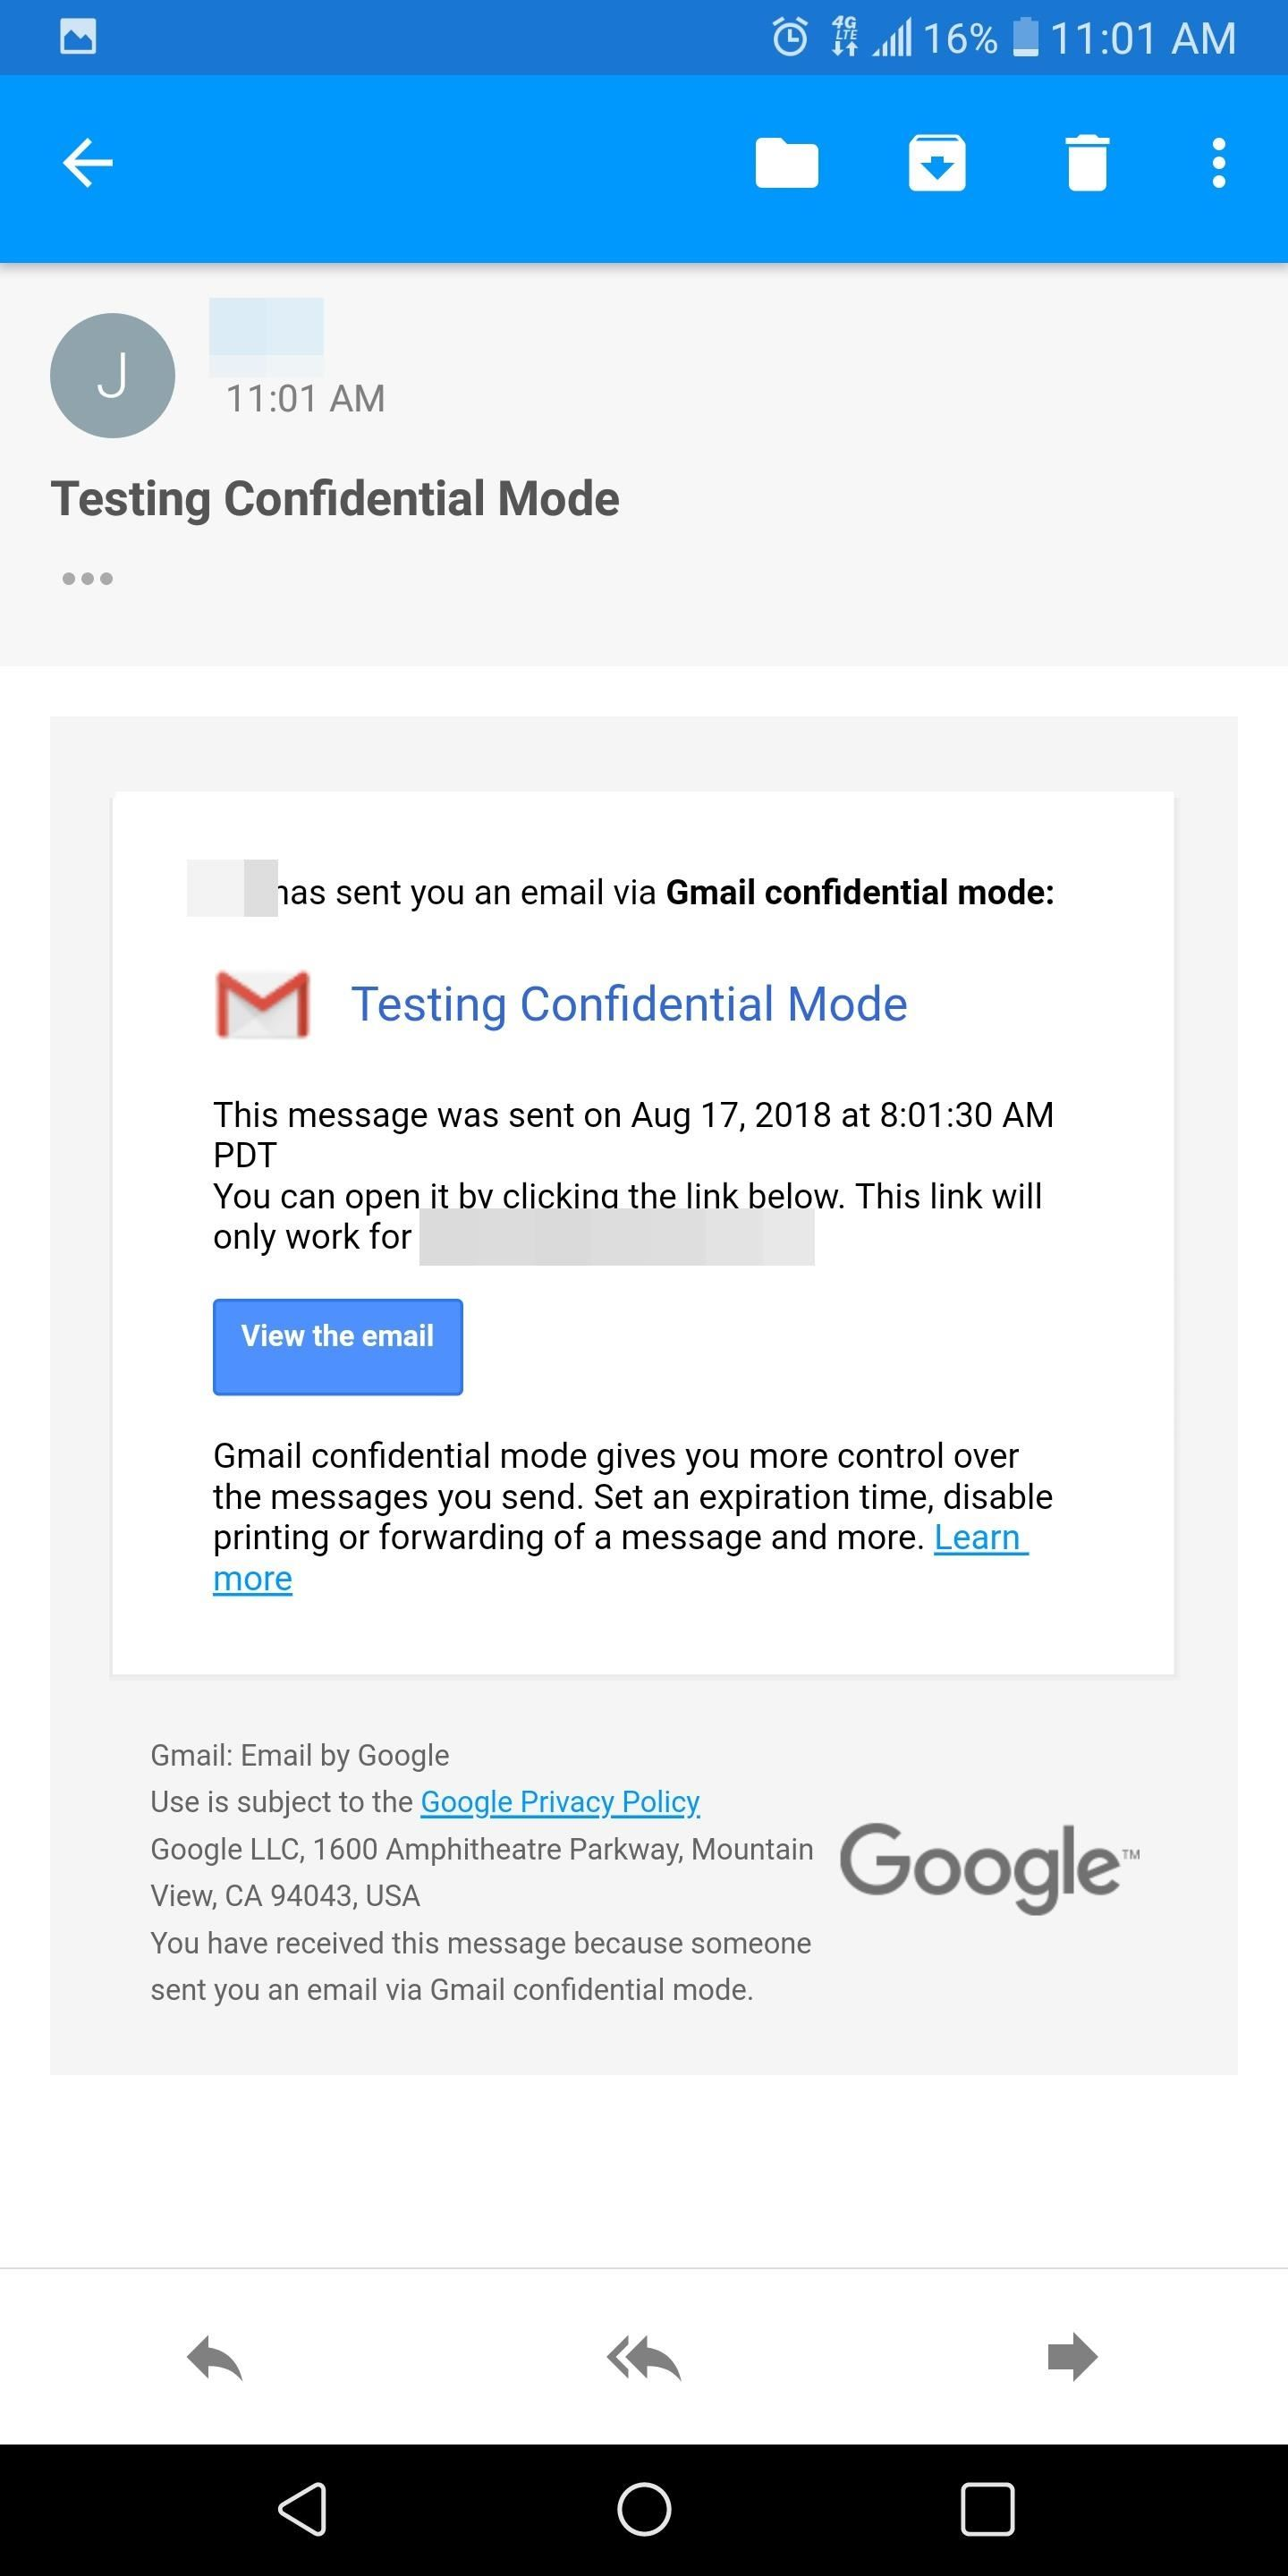 Using Gmail's New Confidential Mode to Send Private, Self-Destructive Emails Through Your Phone